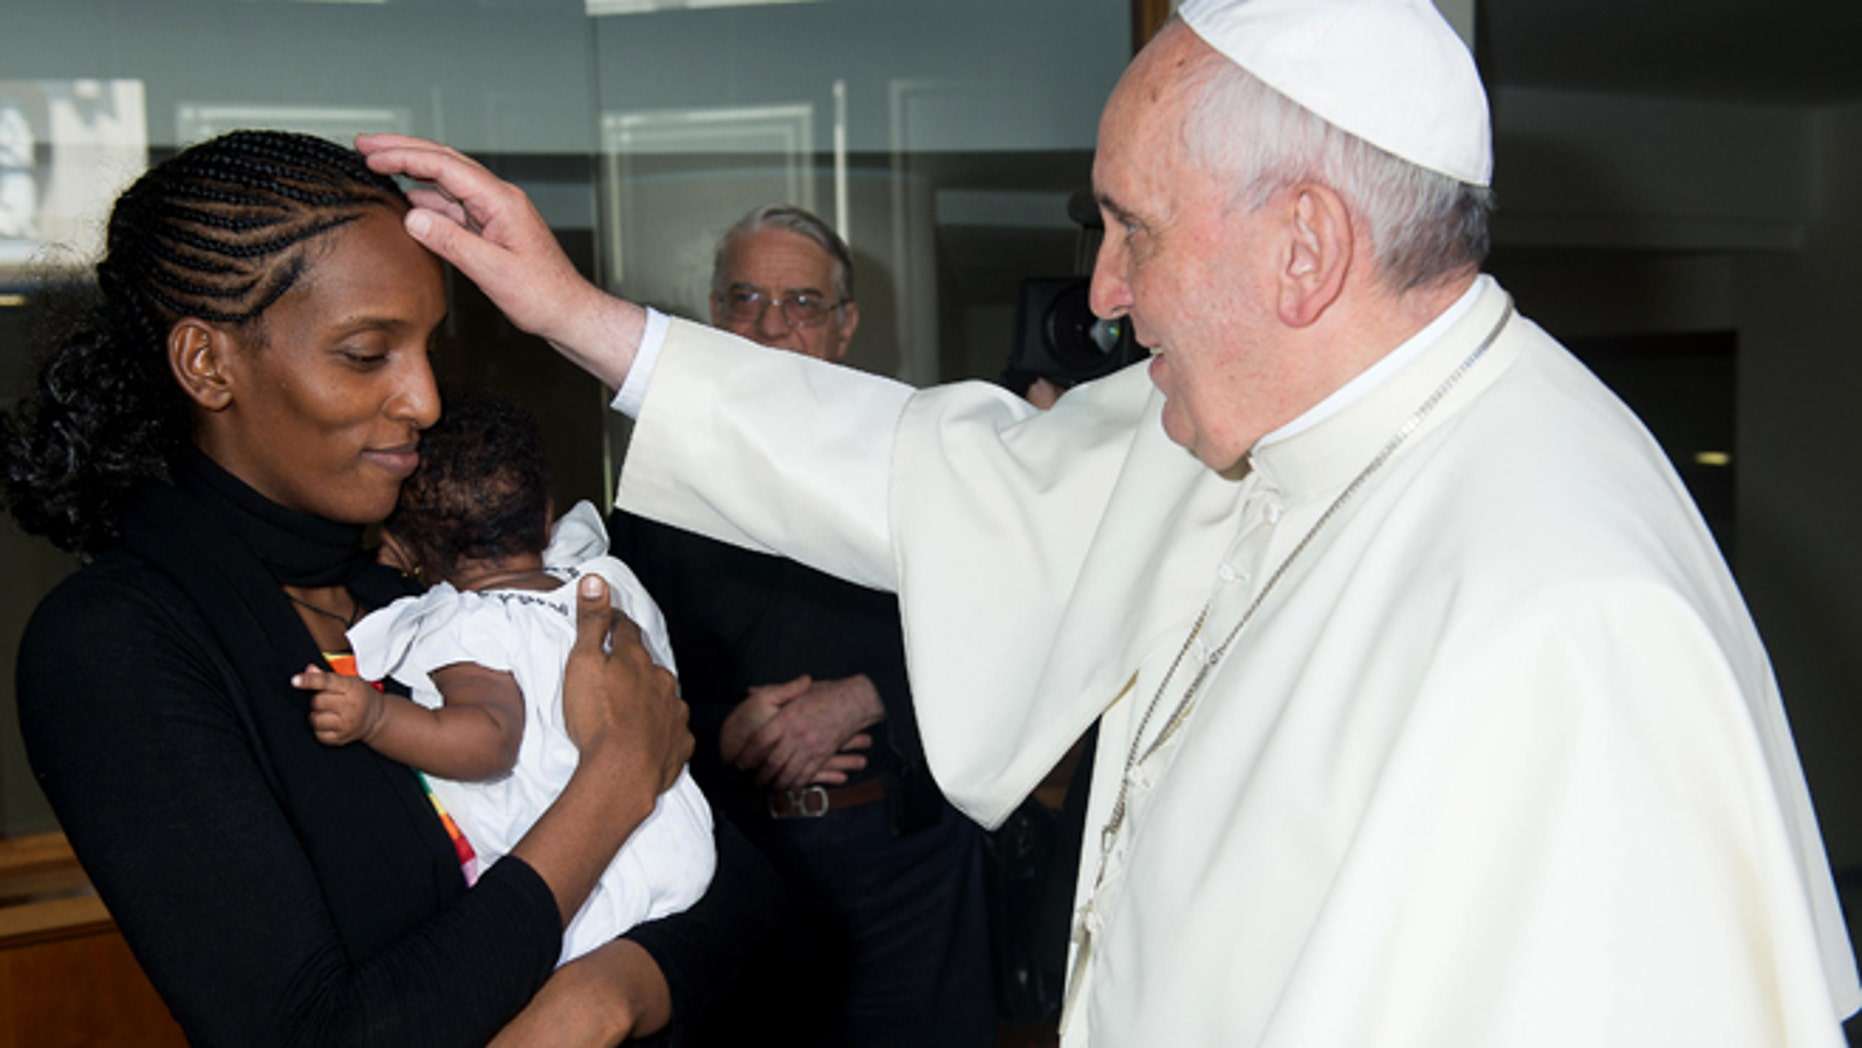 July 24, 2014: In this photo provided by the Vatican newspaper L'Osservatore Romano, Pope Francis meets Meriam Ibrahim, from Sudan, with her daughter Maya in her arms, in his Santa Marta residence, at the Vatican. The Sudanese woman who was sentenced to death in Sudan for refusing to recant her Christian faith has arrived in Italy along with her family, including the infant born in prison. (AP)